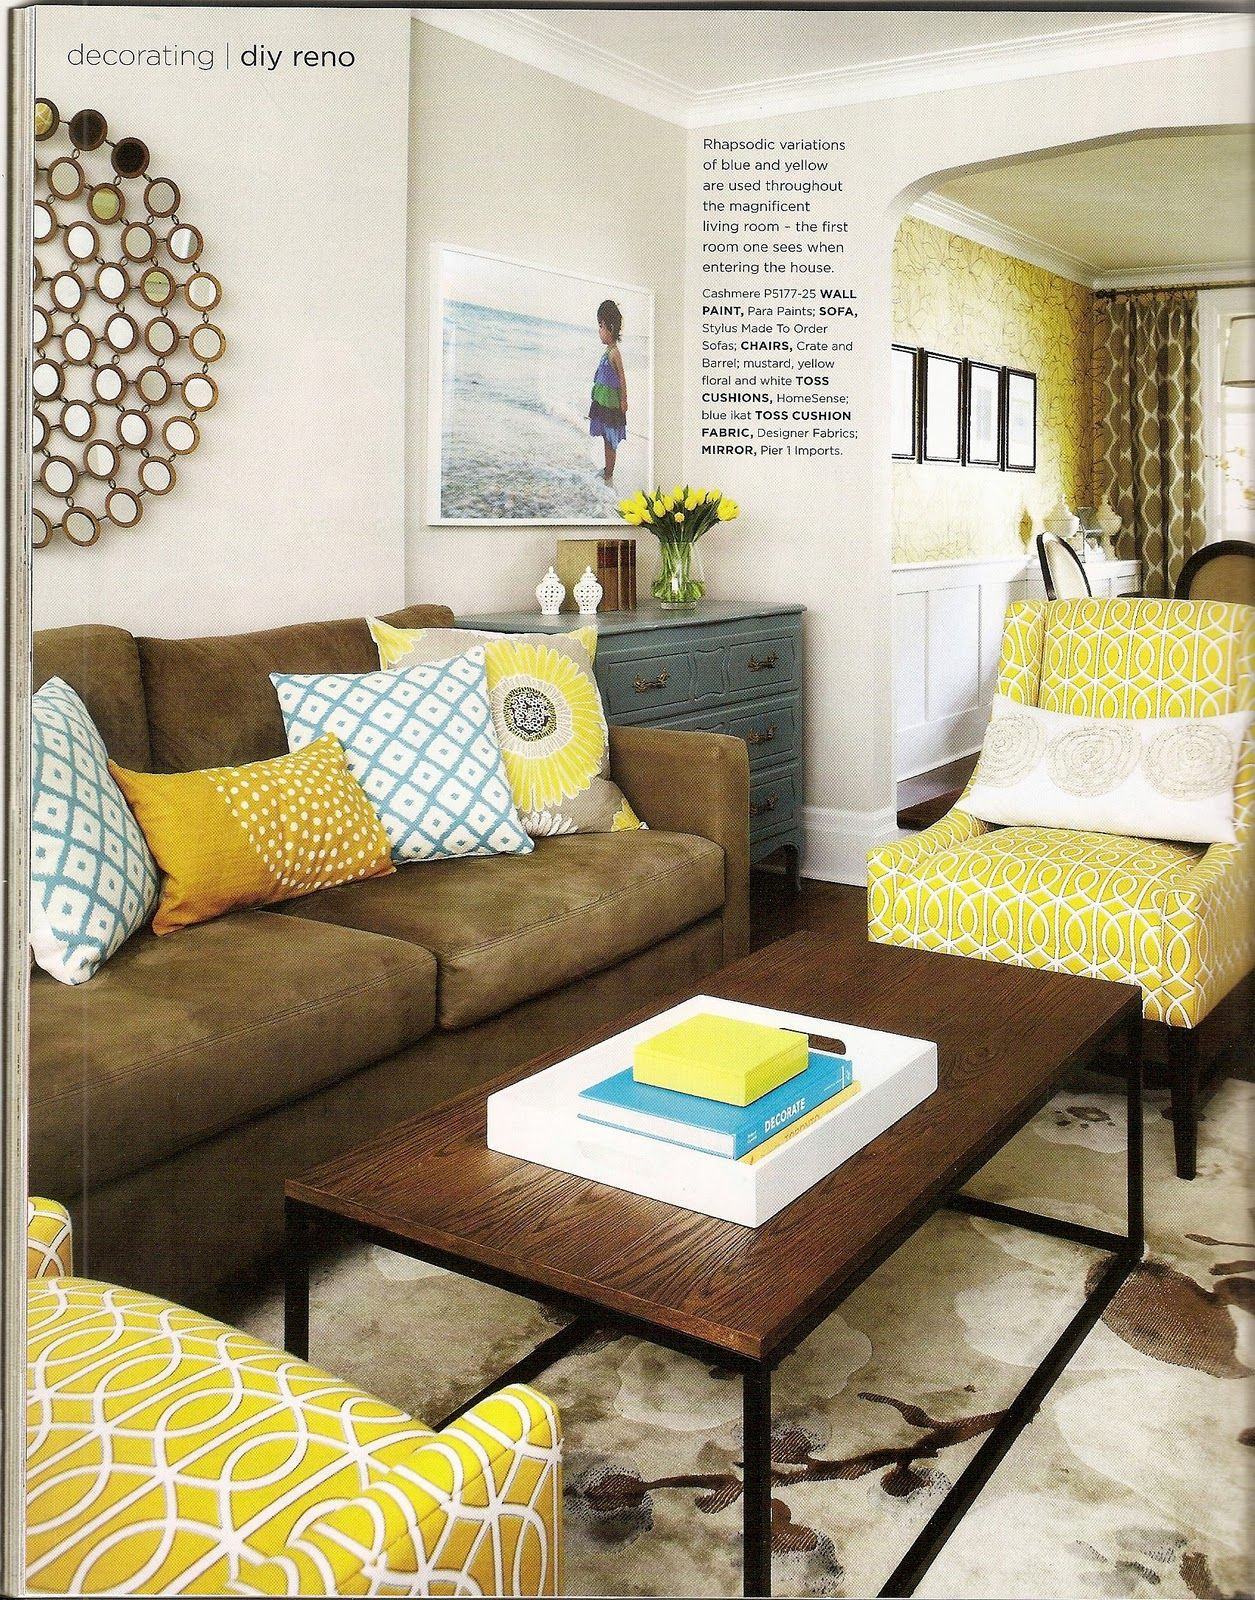 Awesome Inspiration For Blue, Yellow And Tan Color Scheme In Living Room Pictures